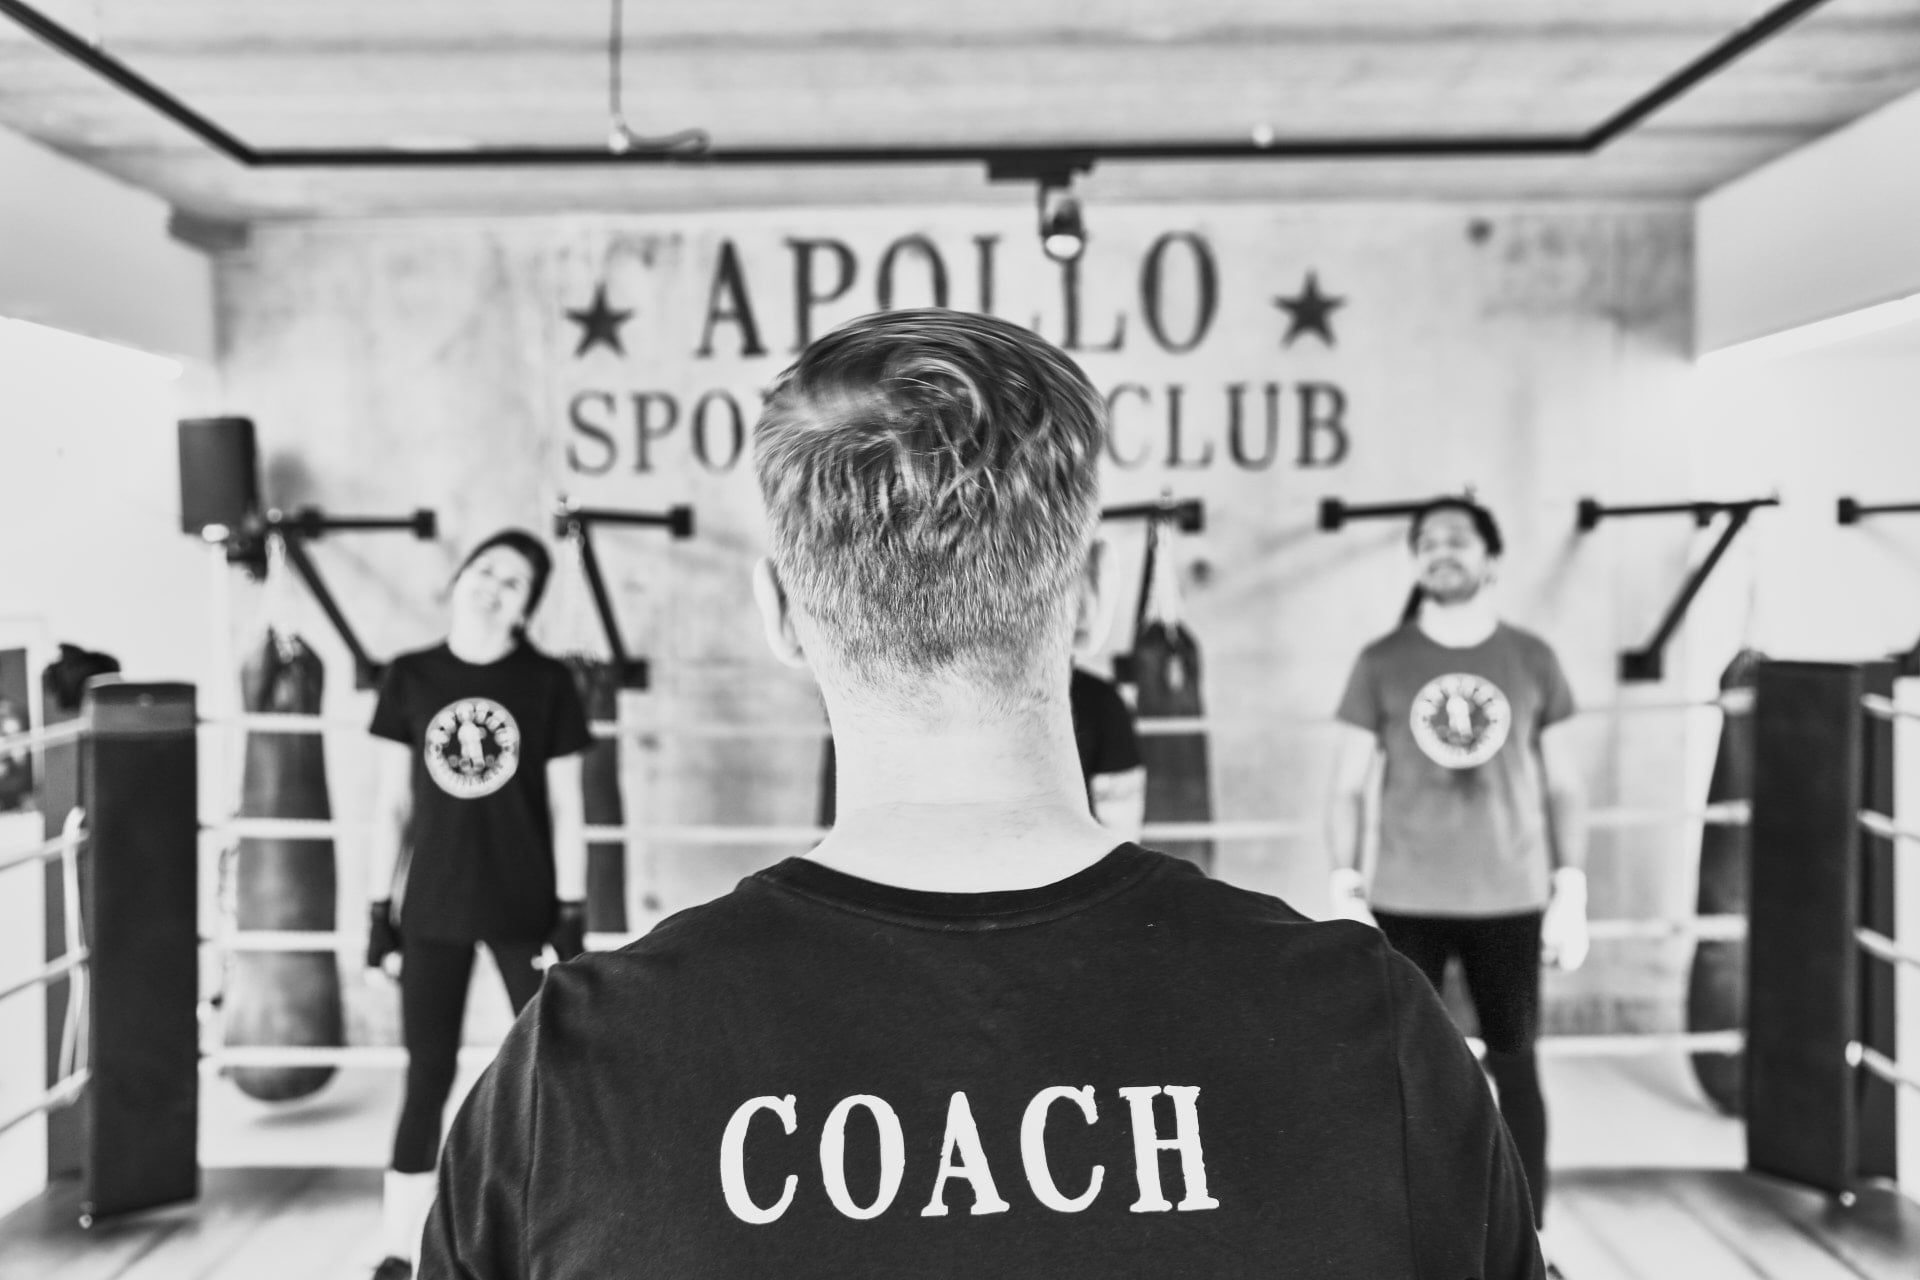 Coaching boxe anglaise chez Apollo Sporting Club